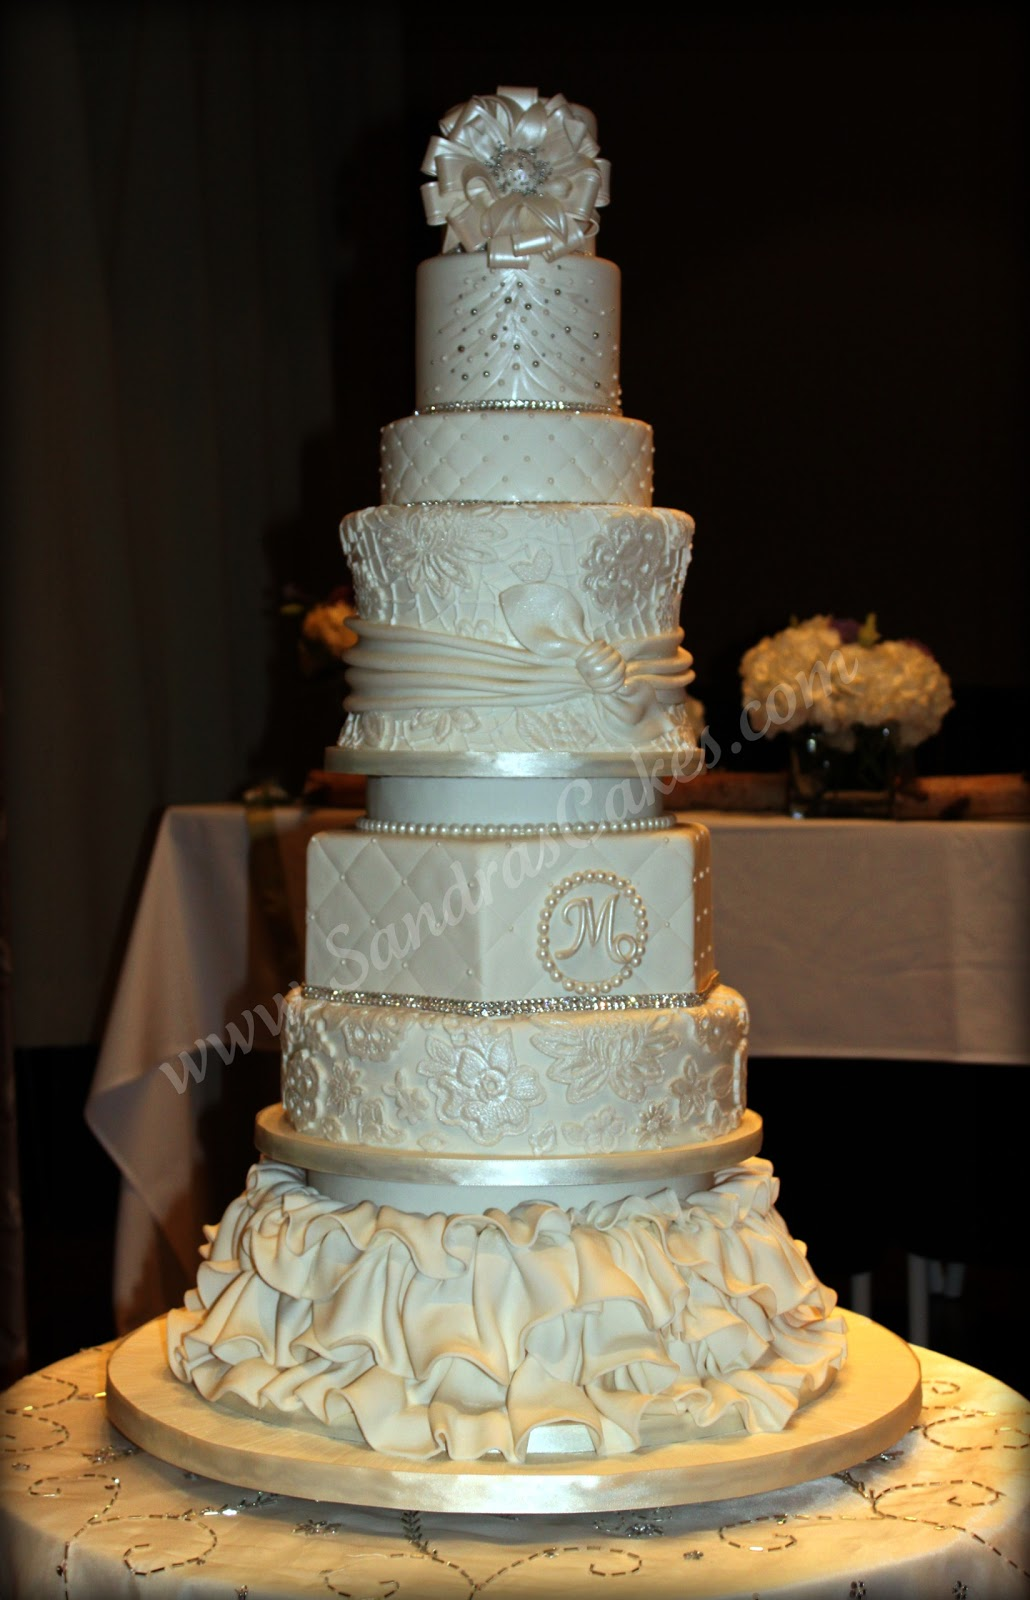 OUR WEDDING CAKES EDIBLE WORKS OF ART